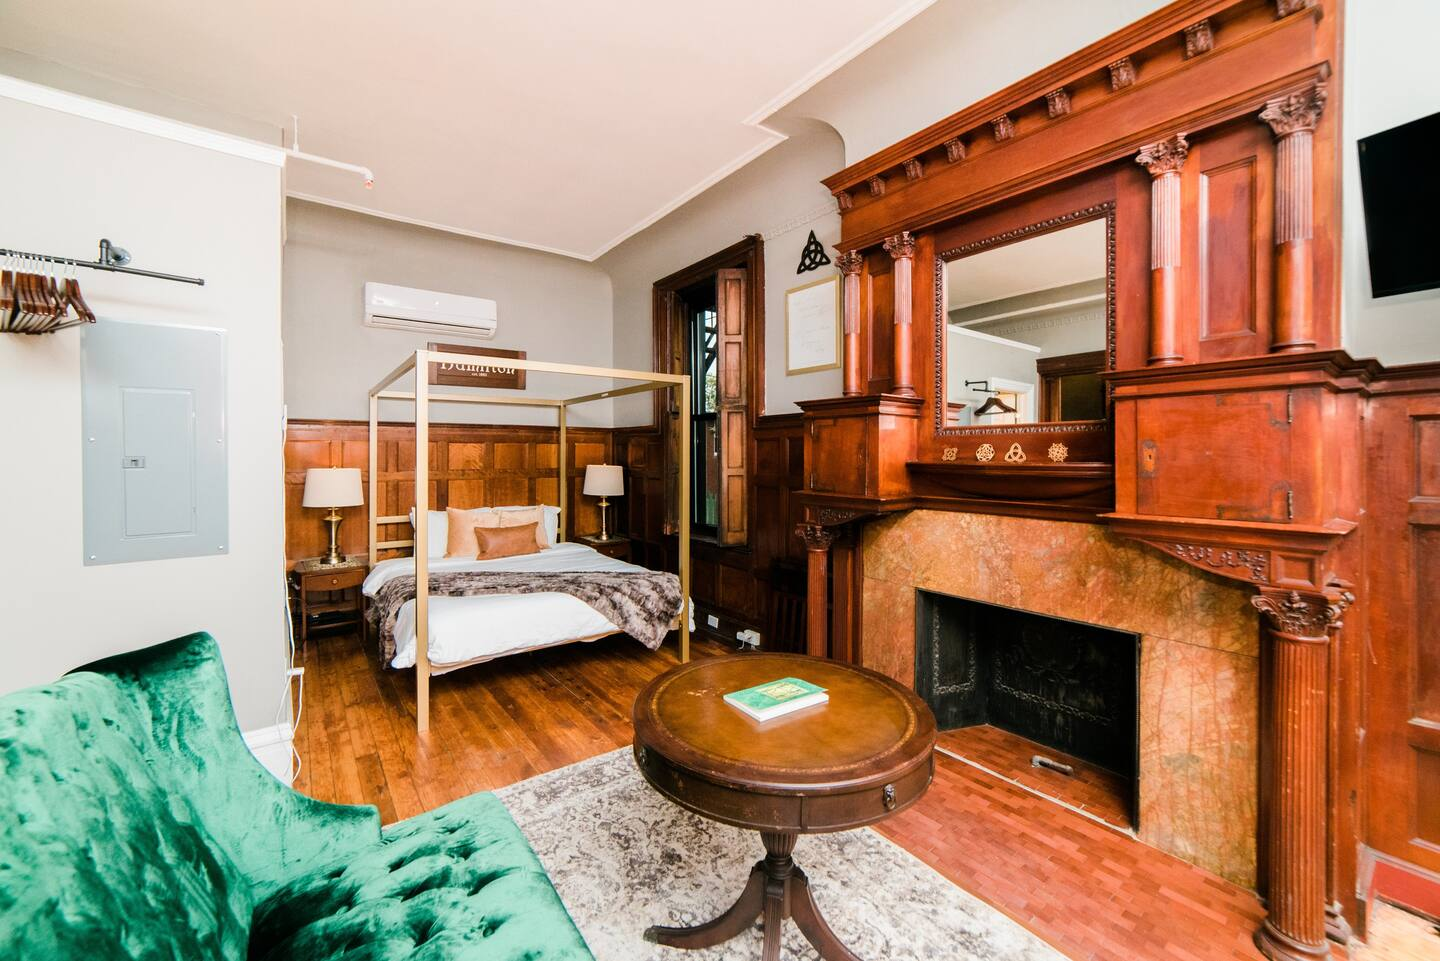 Cheap Airbnb In Pittsburgh